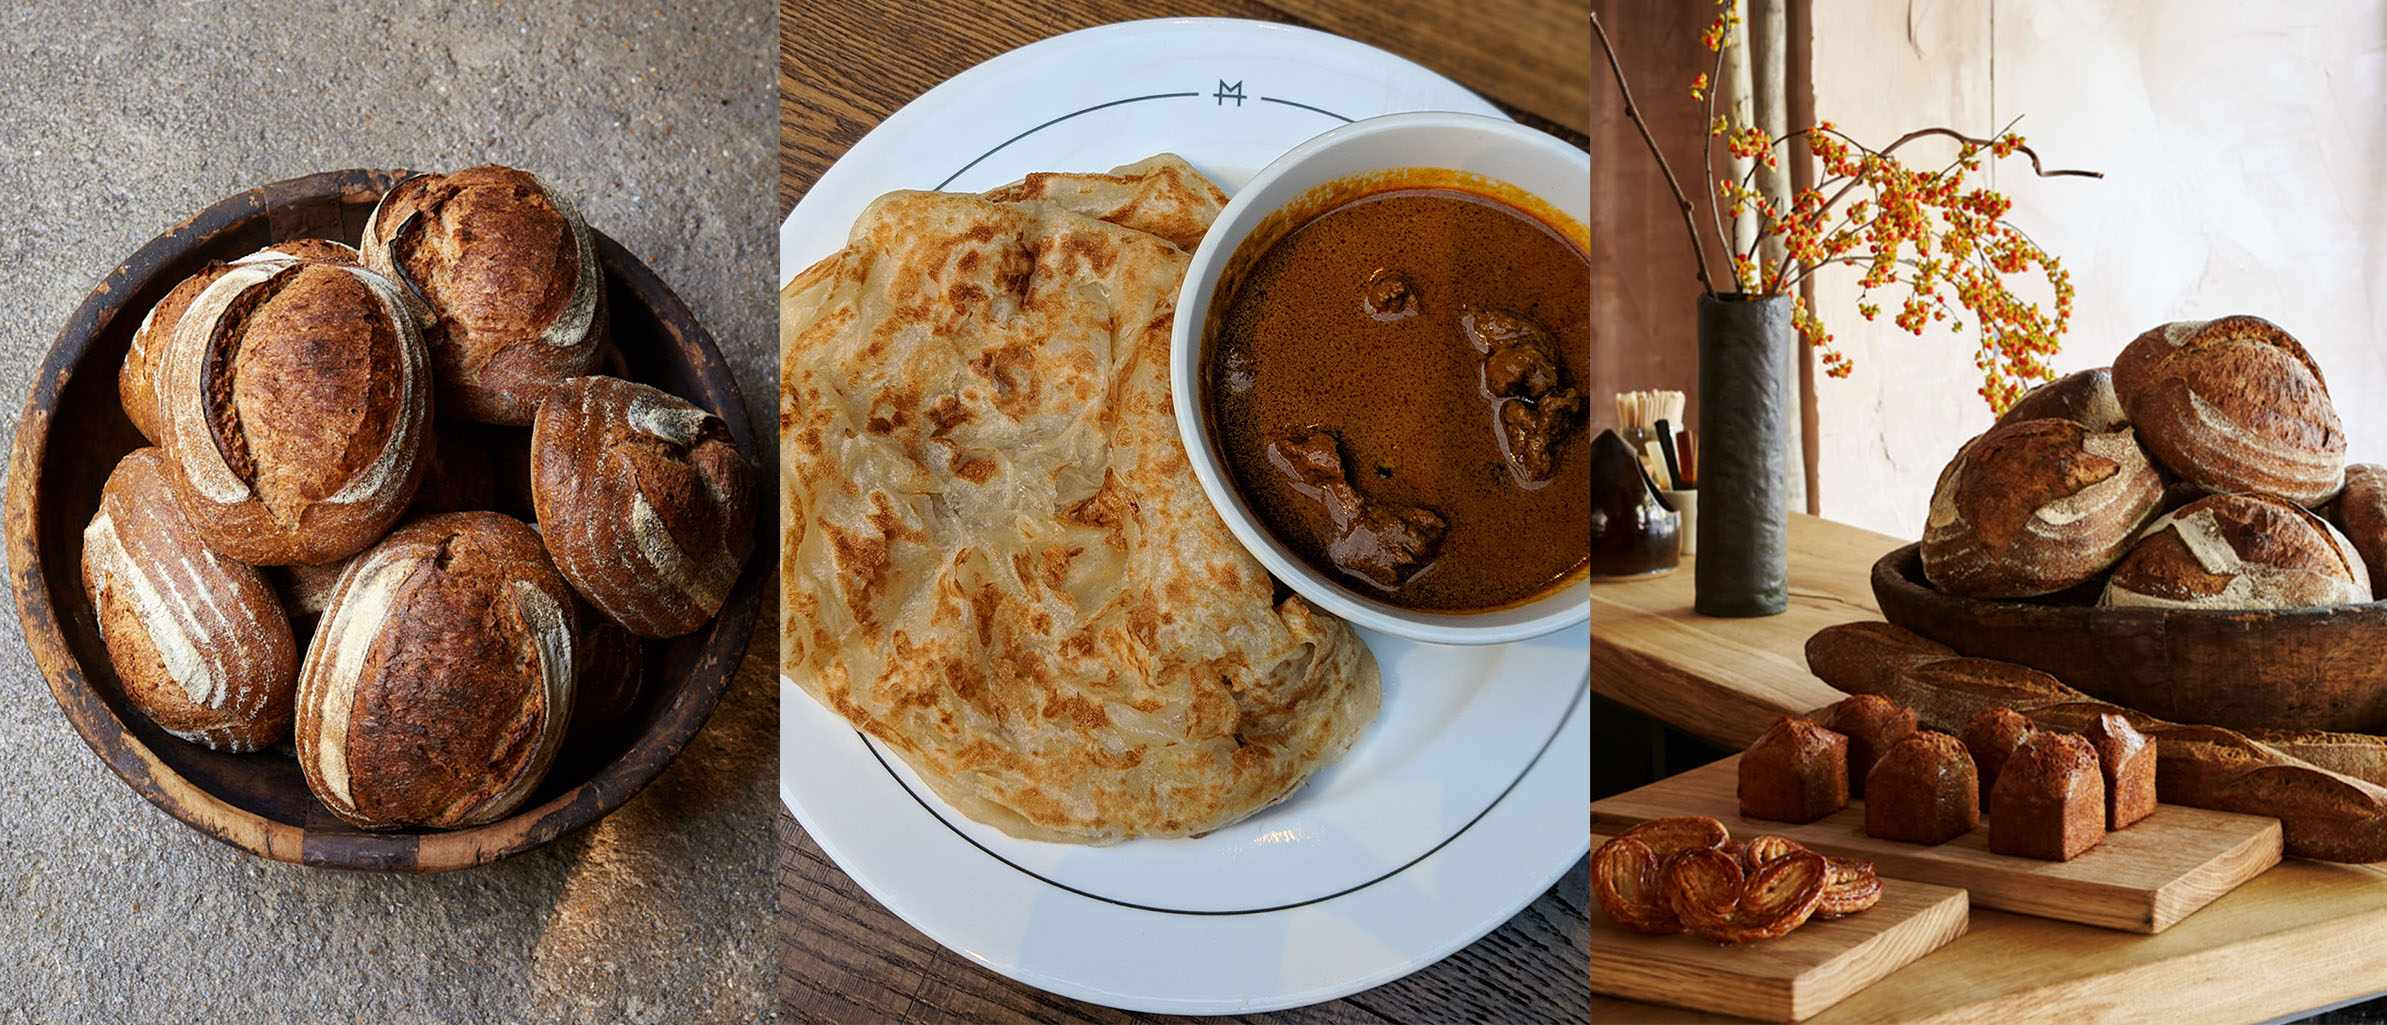 Three images in a row. The first is of a selection of breads, the second is a bowl of mutton curry with roti and the last is of more bread